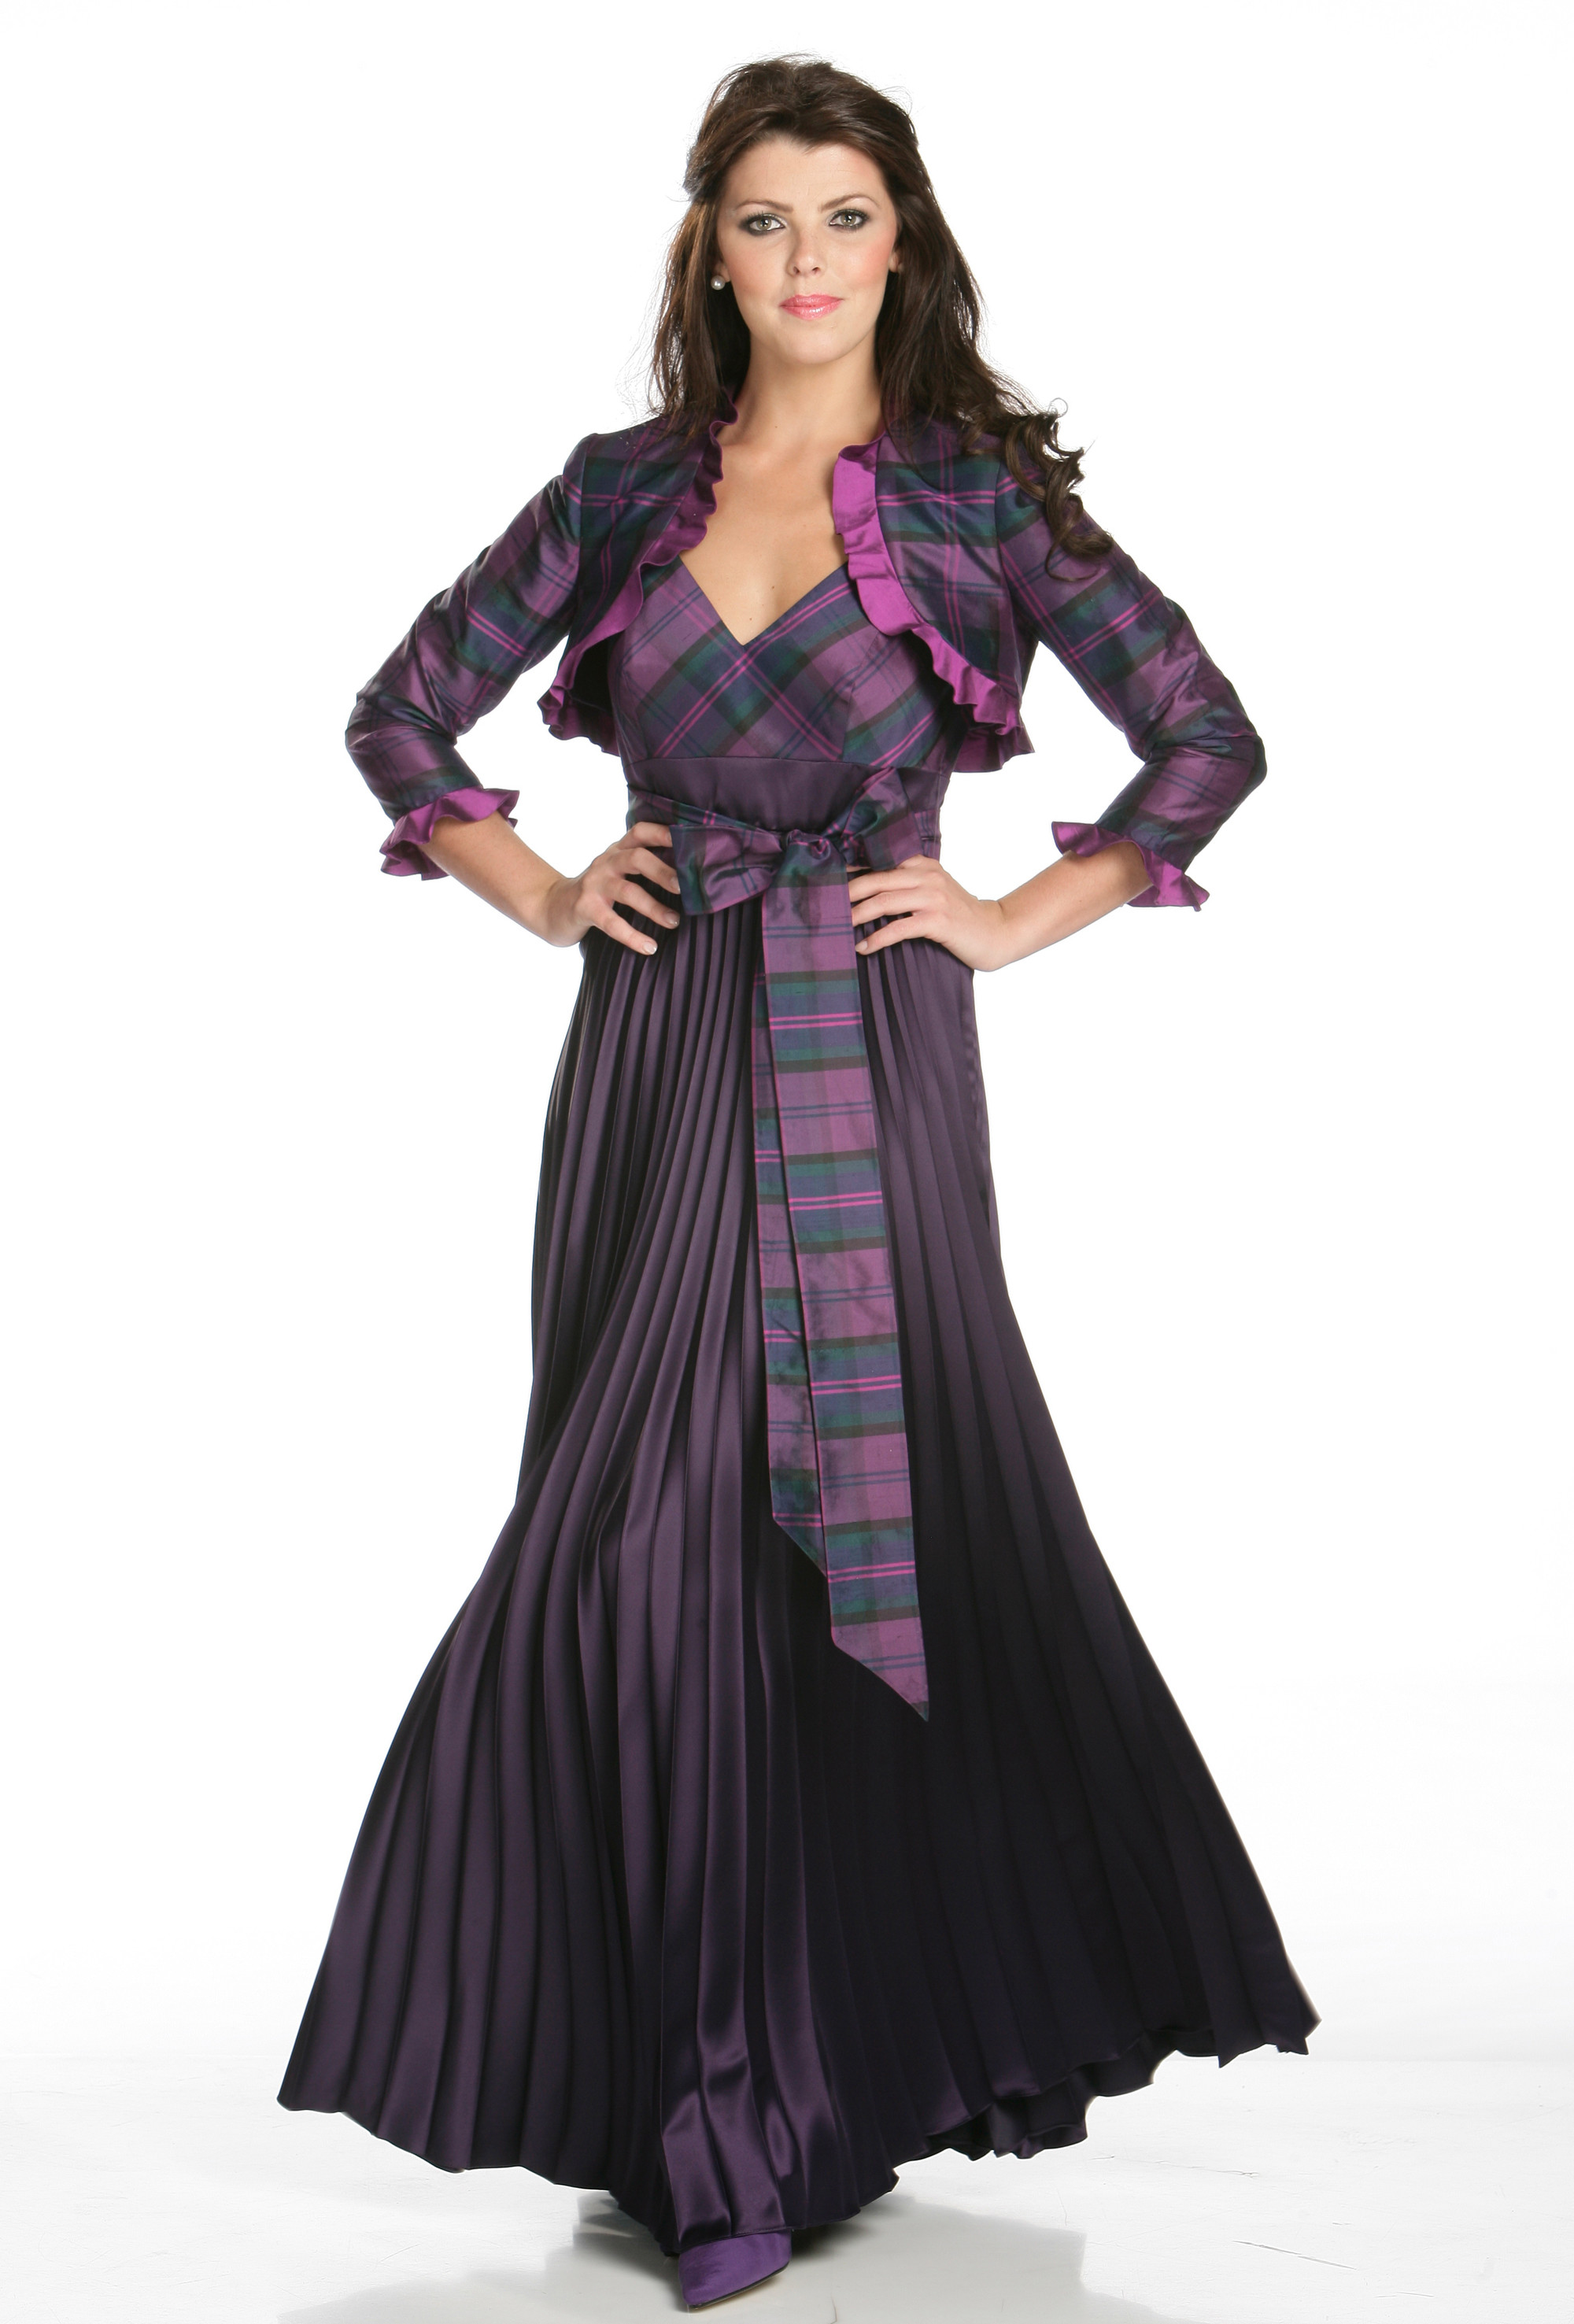 Heather joyce young for Scottish wedding dresses with tartan